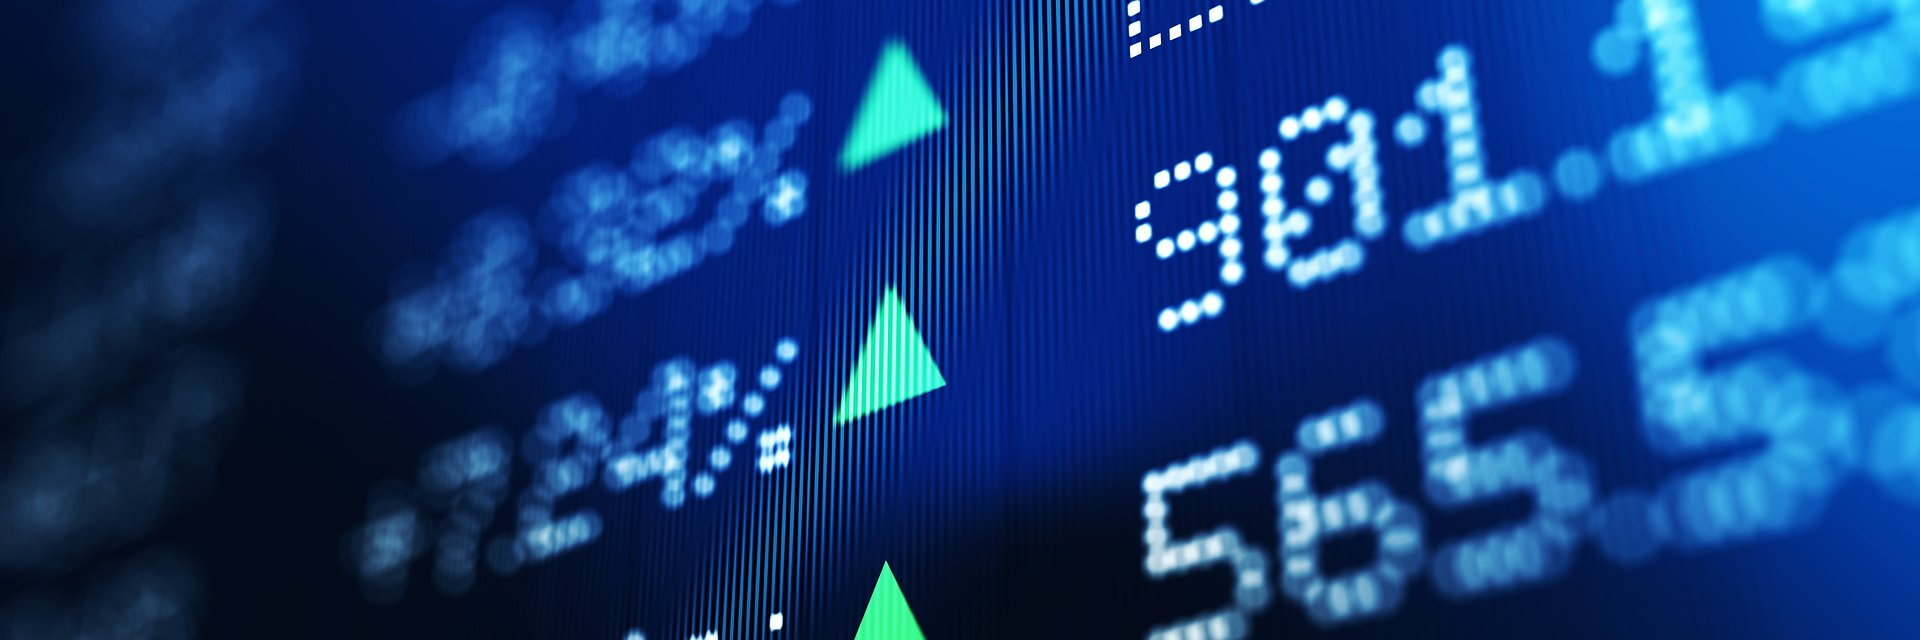 Fixed-Income Trading Trends for 2020